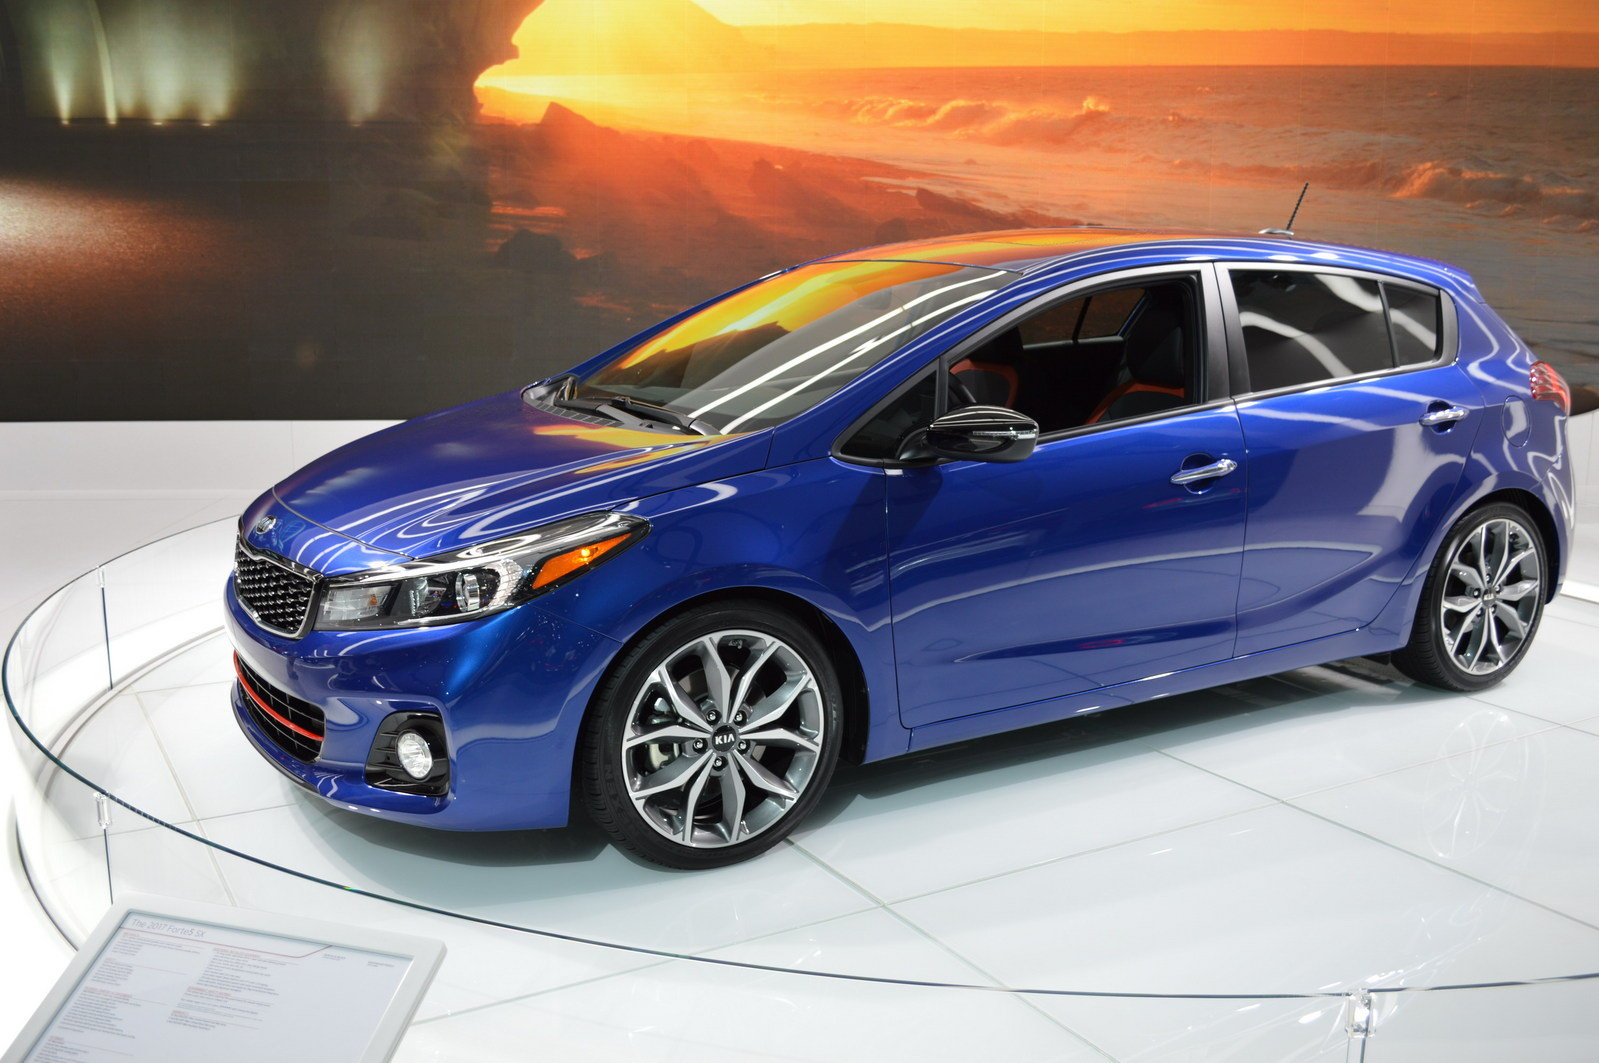 2017 kia forte5 picture 661879 car review top speed. Black Bedroom Furniture Sets. Home Design Ideas